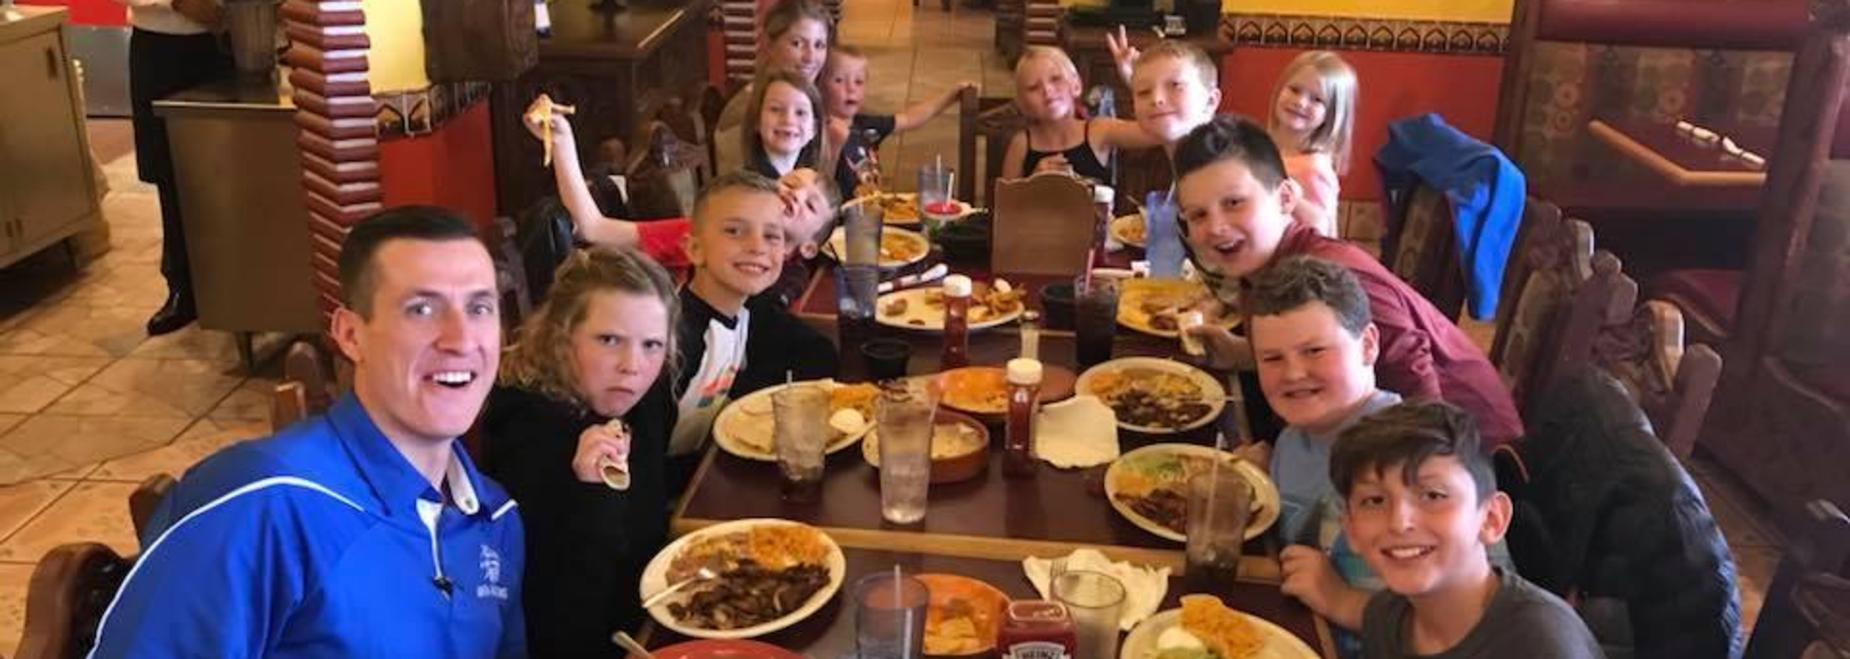 Walkathon Winners out having lunch with Mr. Dastrup at Don Pedro's